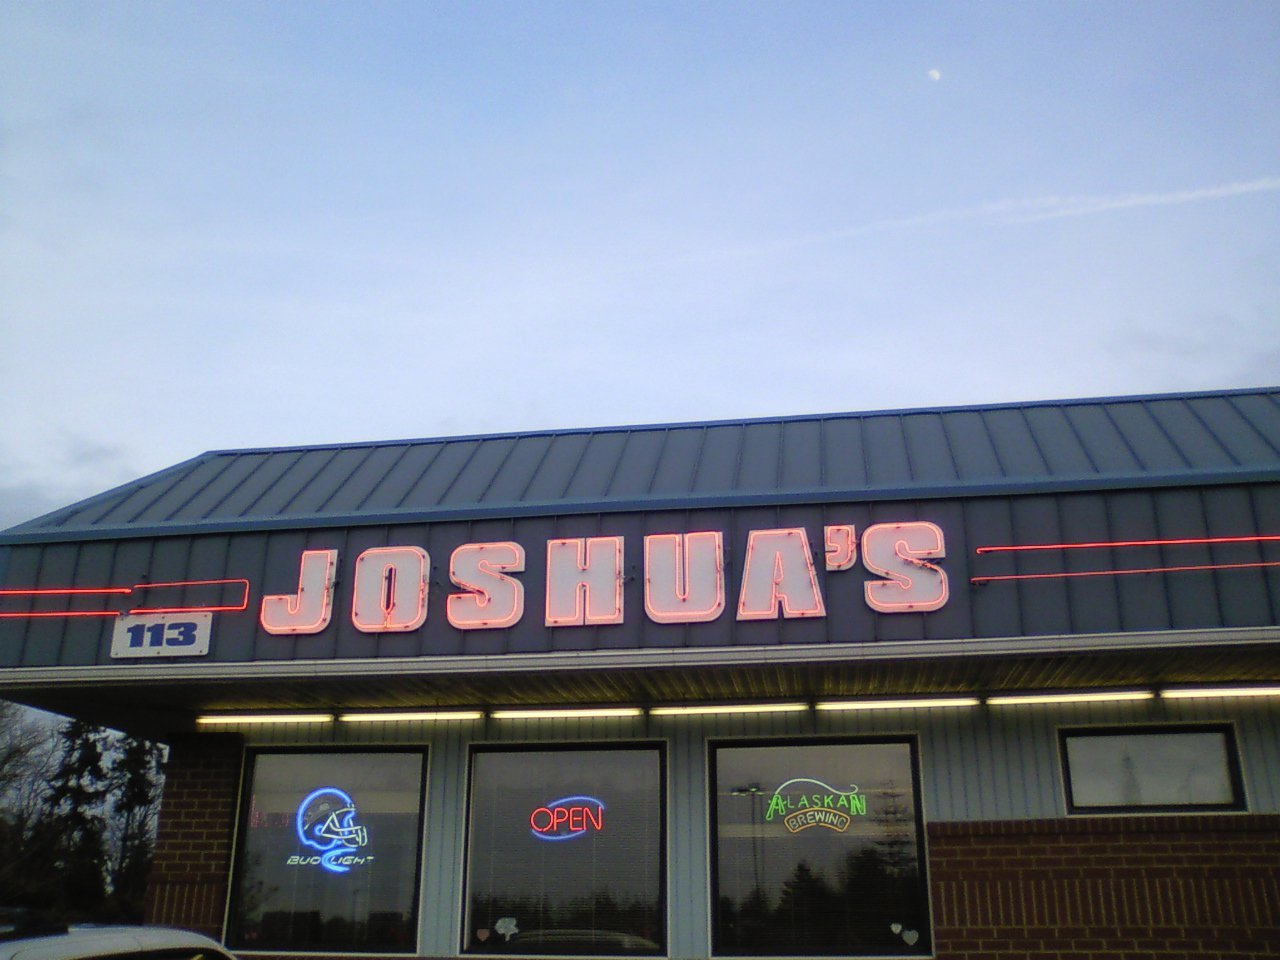 joshuas at Joshuas